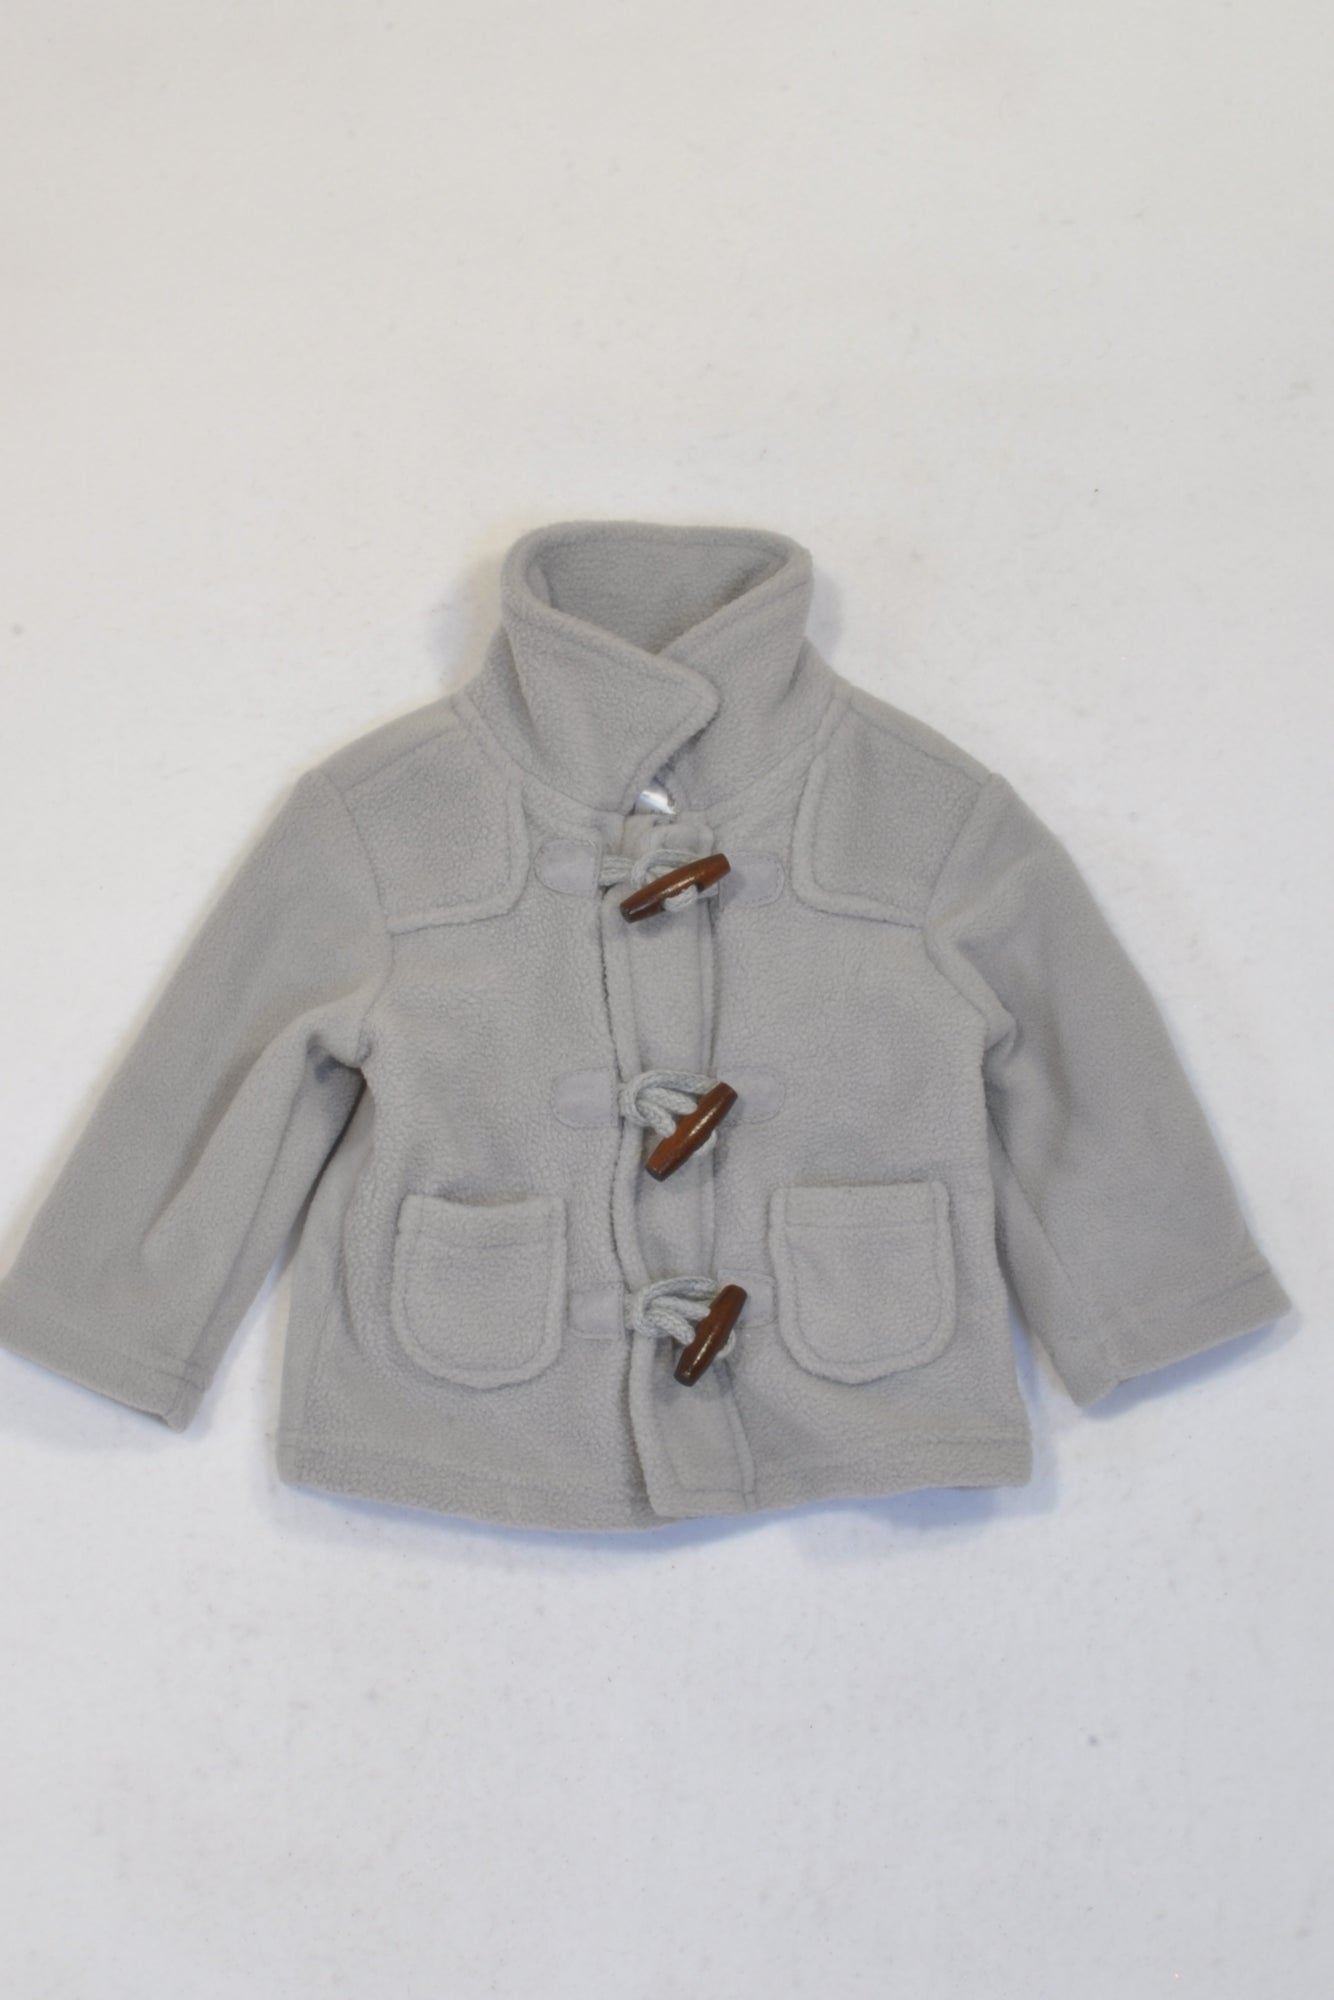 New Clicks Grey Toggle Jacket Unisex 0-3 months